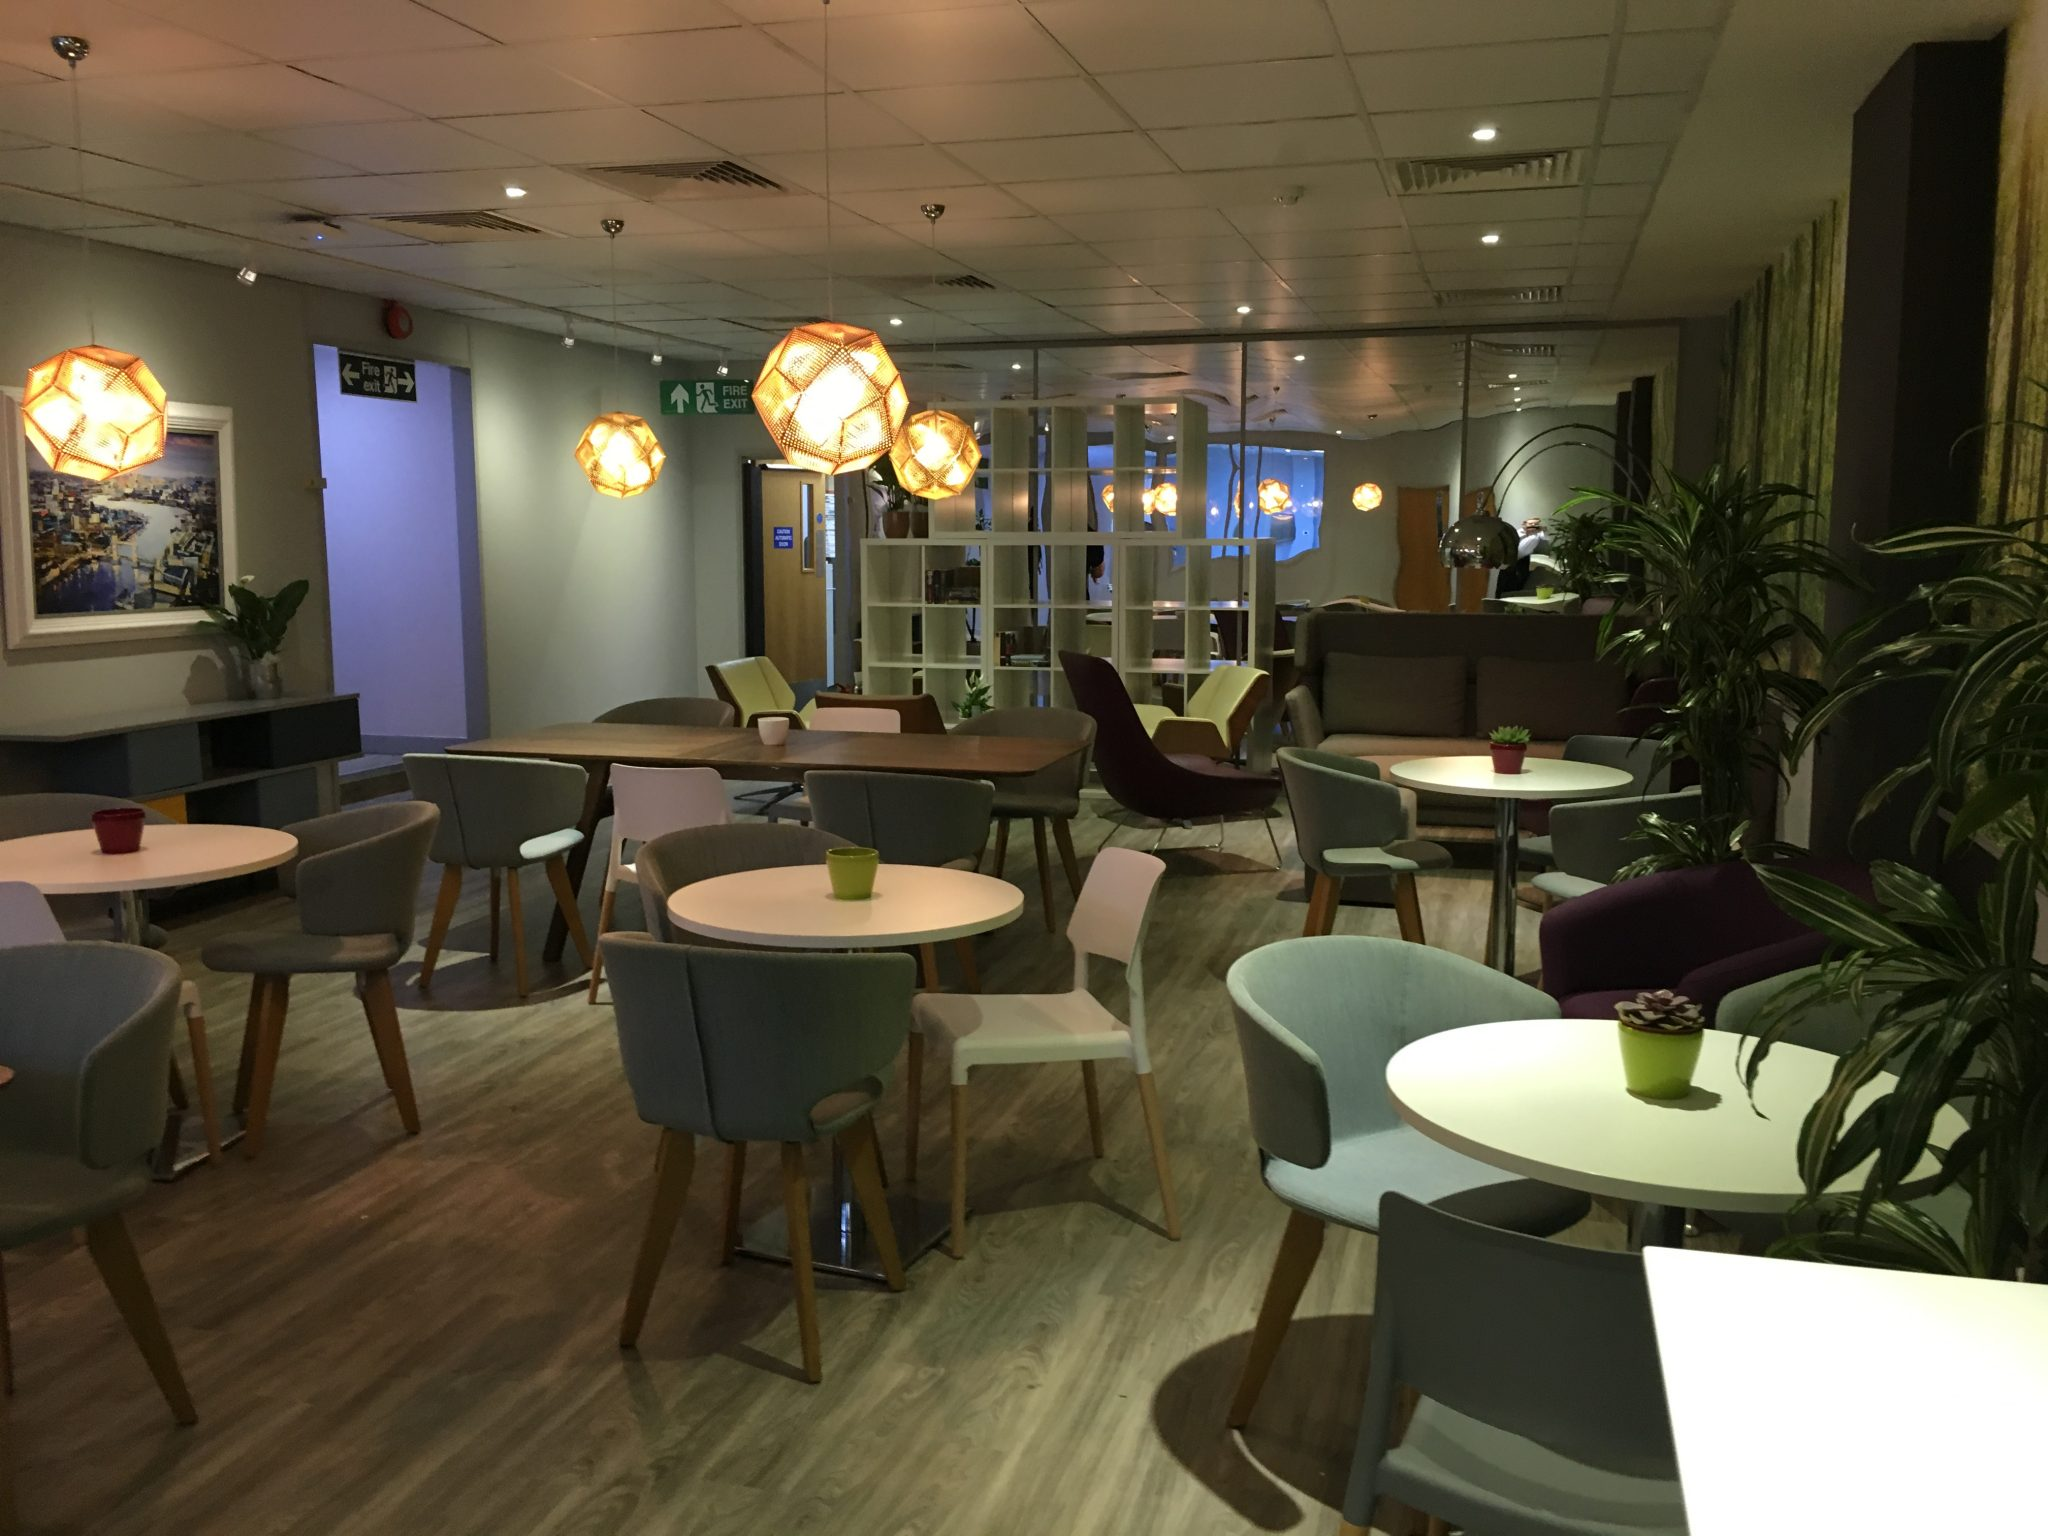 A newly refurbished breakout area with new lighting installed